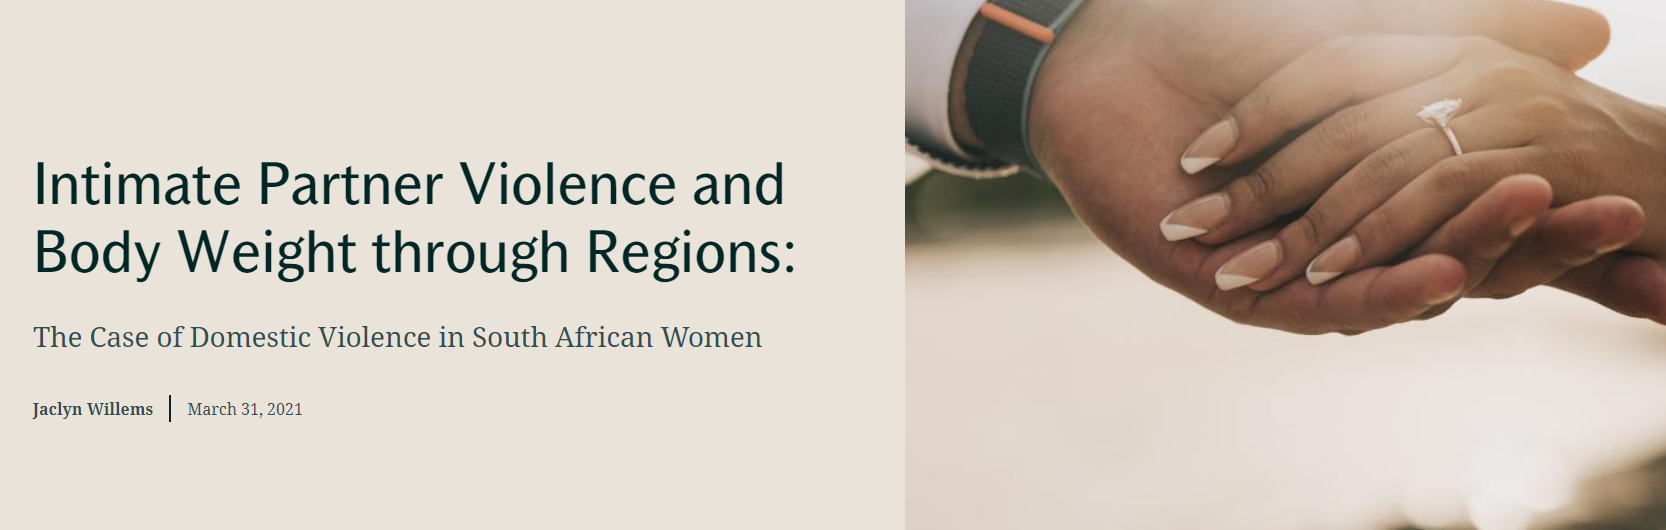 Intimate Partner Violence and Body Weight through Regions